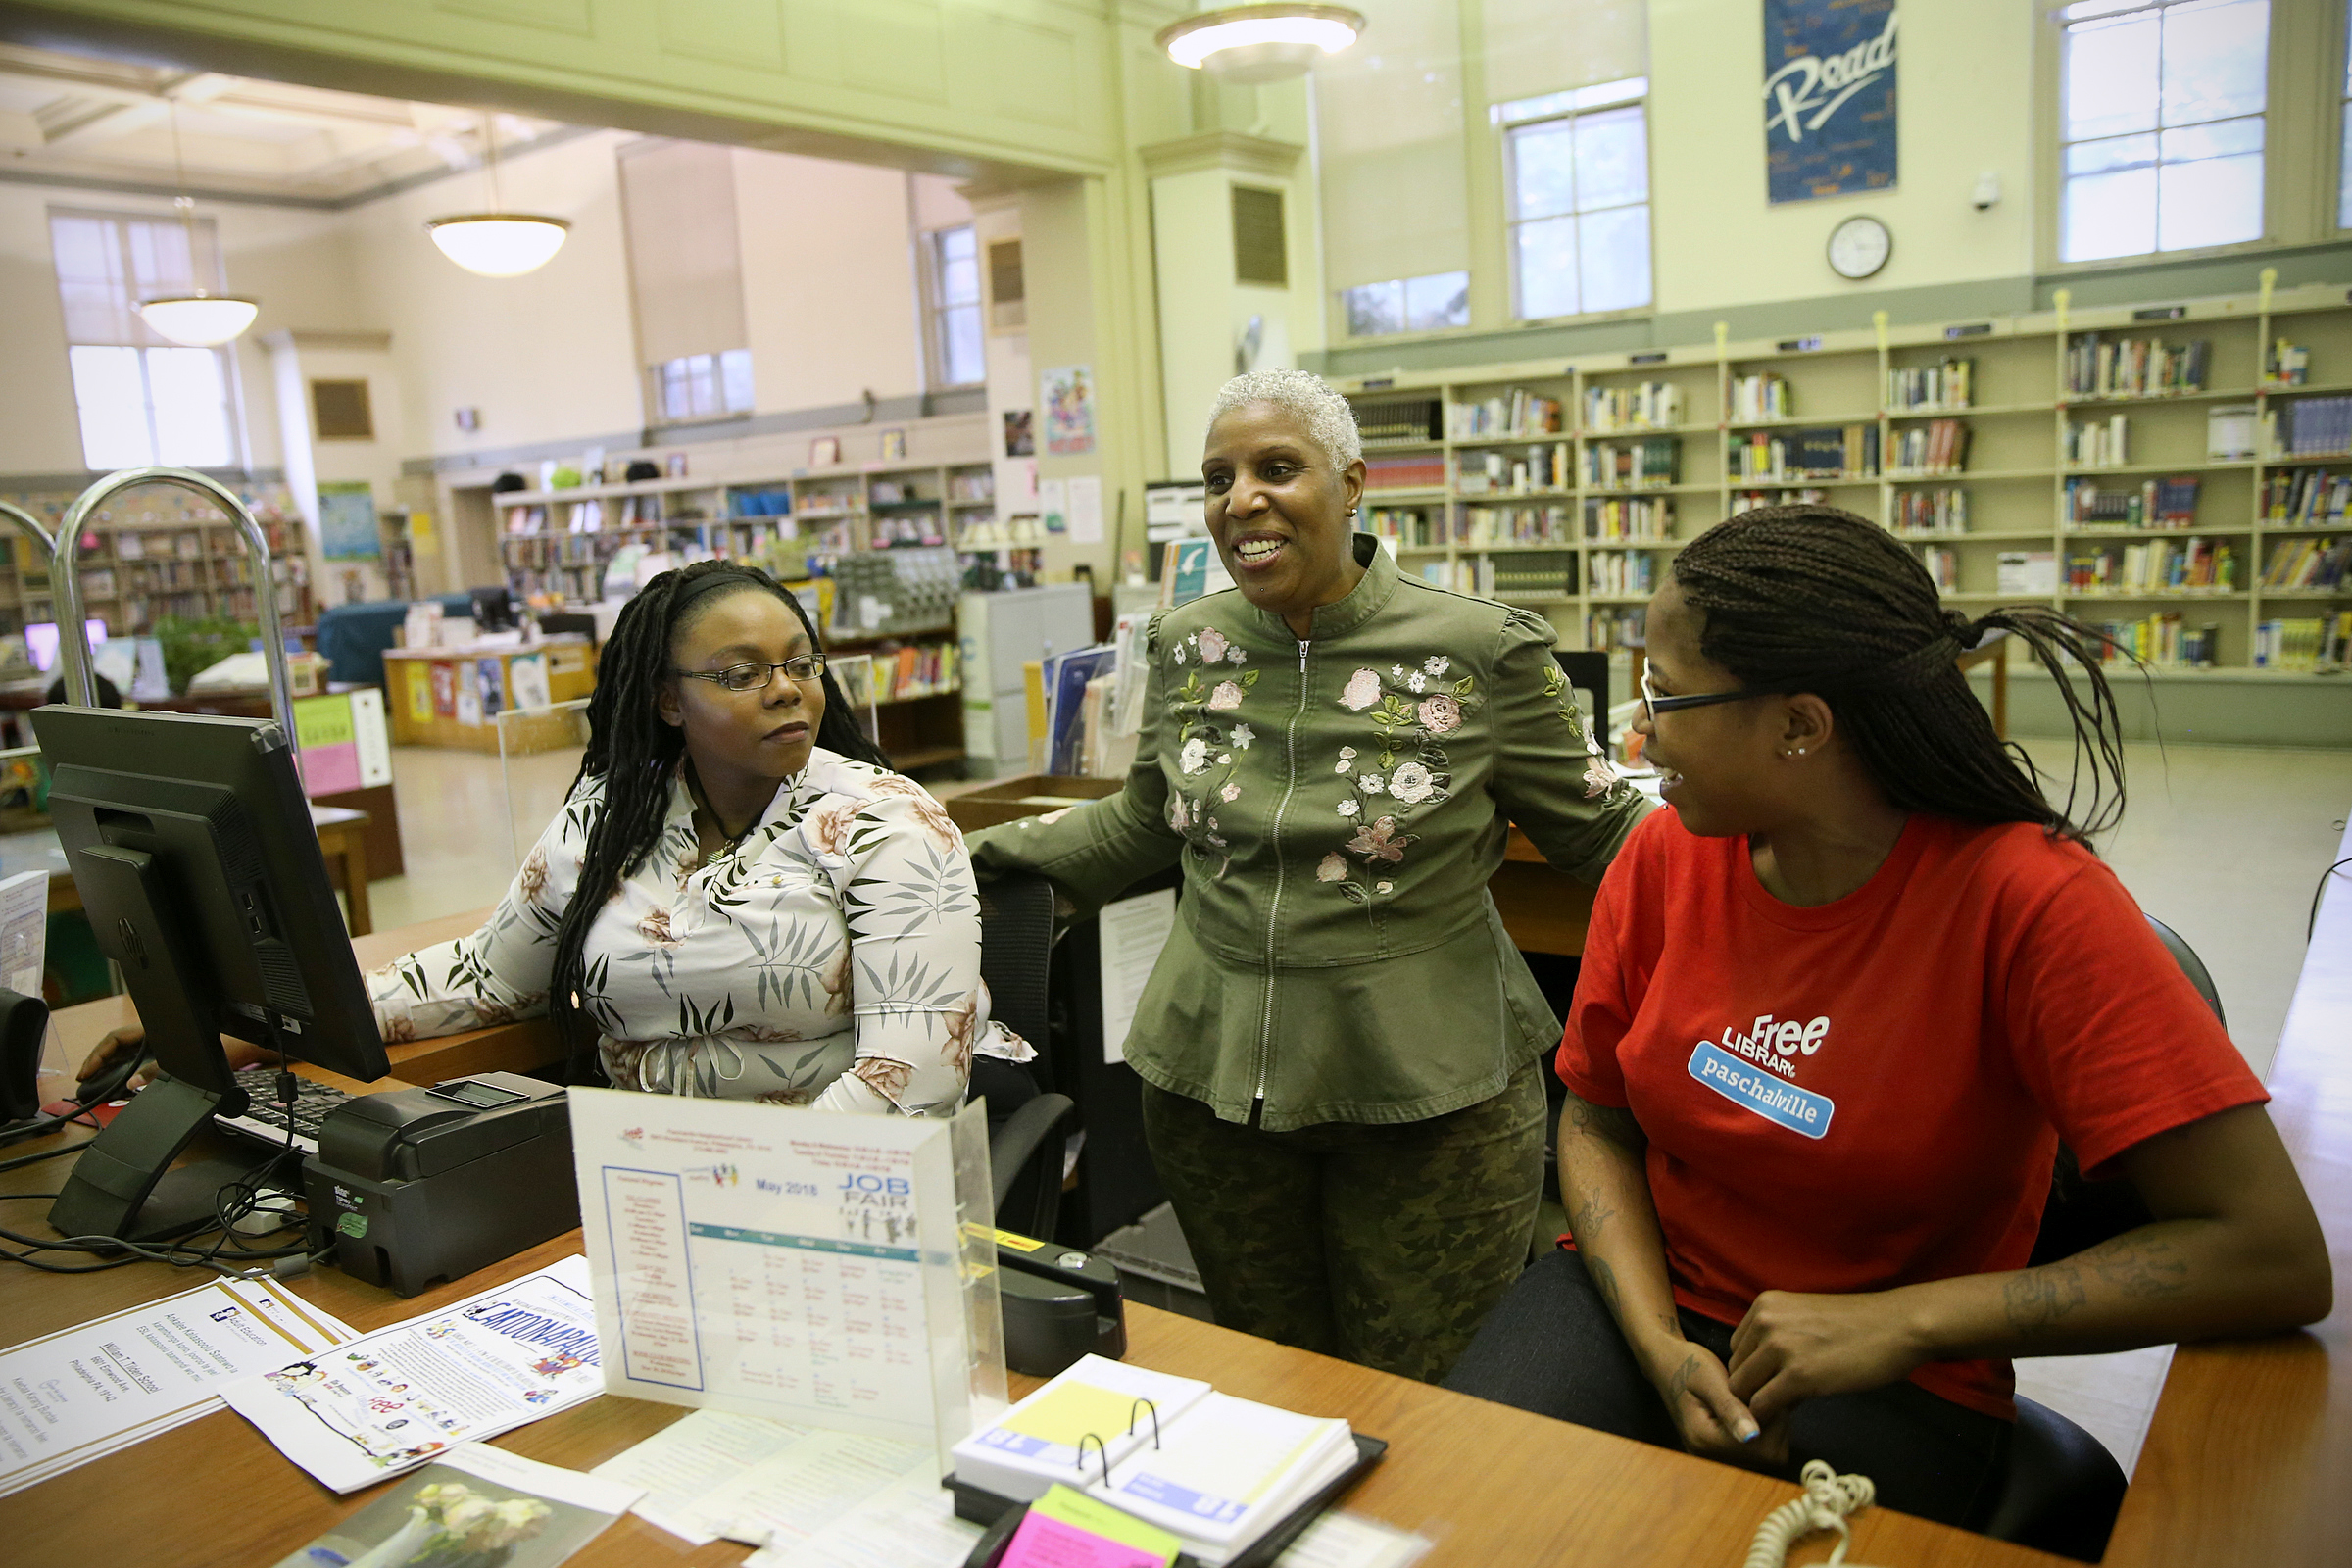 Library supervisor Nyia Morrison, center, talks with library assistants Niema Nelson, left, and Traci Thomas at the Paschalville Library in Southwest Philadelphia on Friday, May 18, 2018. The branch is the only Free Library of Philadelphia location with a job readiness lab, which helps community members find and apply to jobs.